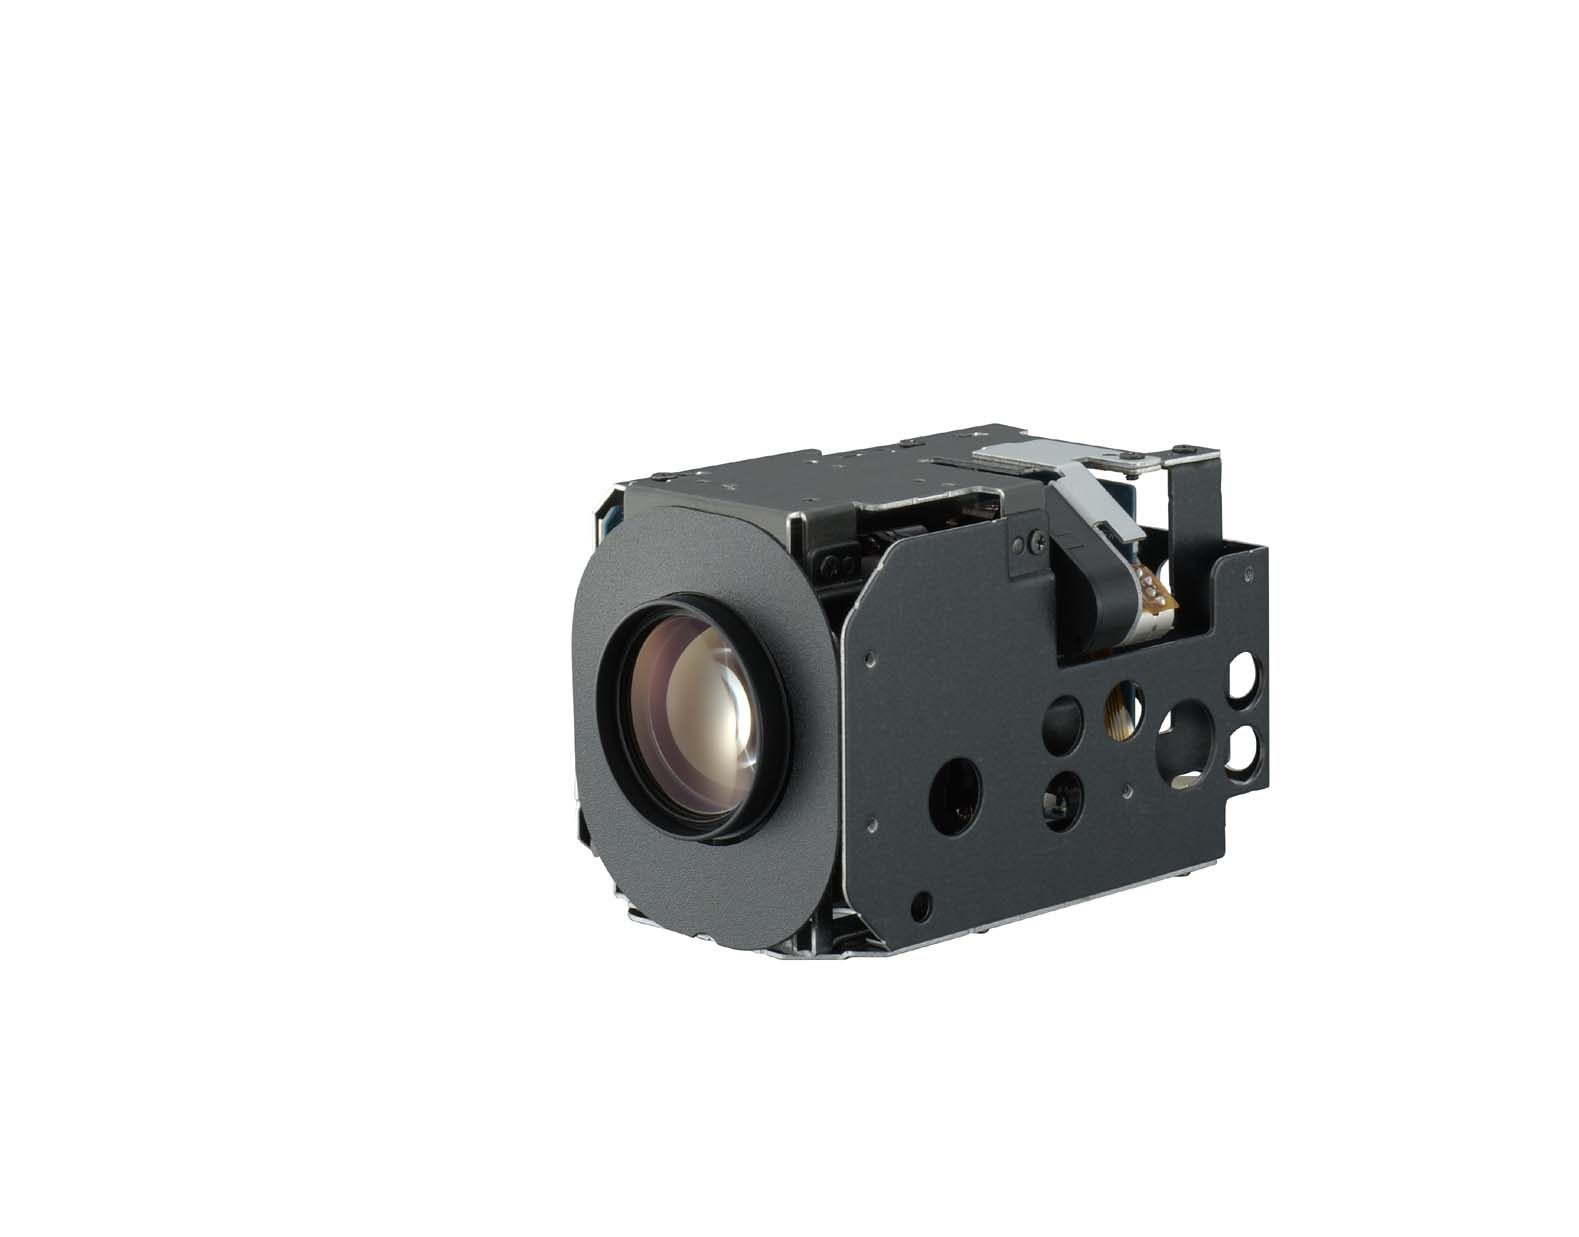 Sony FCB-EX995EP Color CCD Camera sales in gocctvshop.com